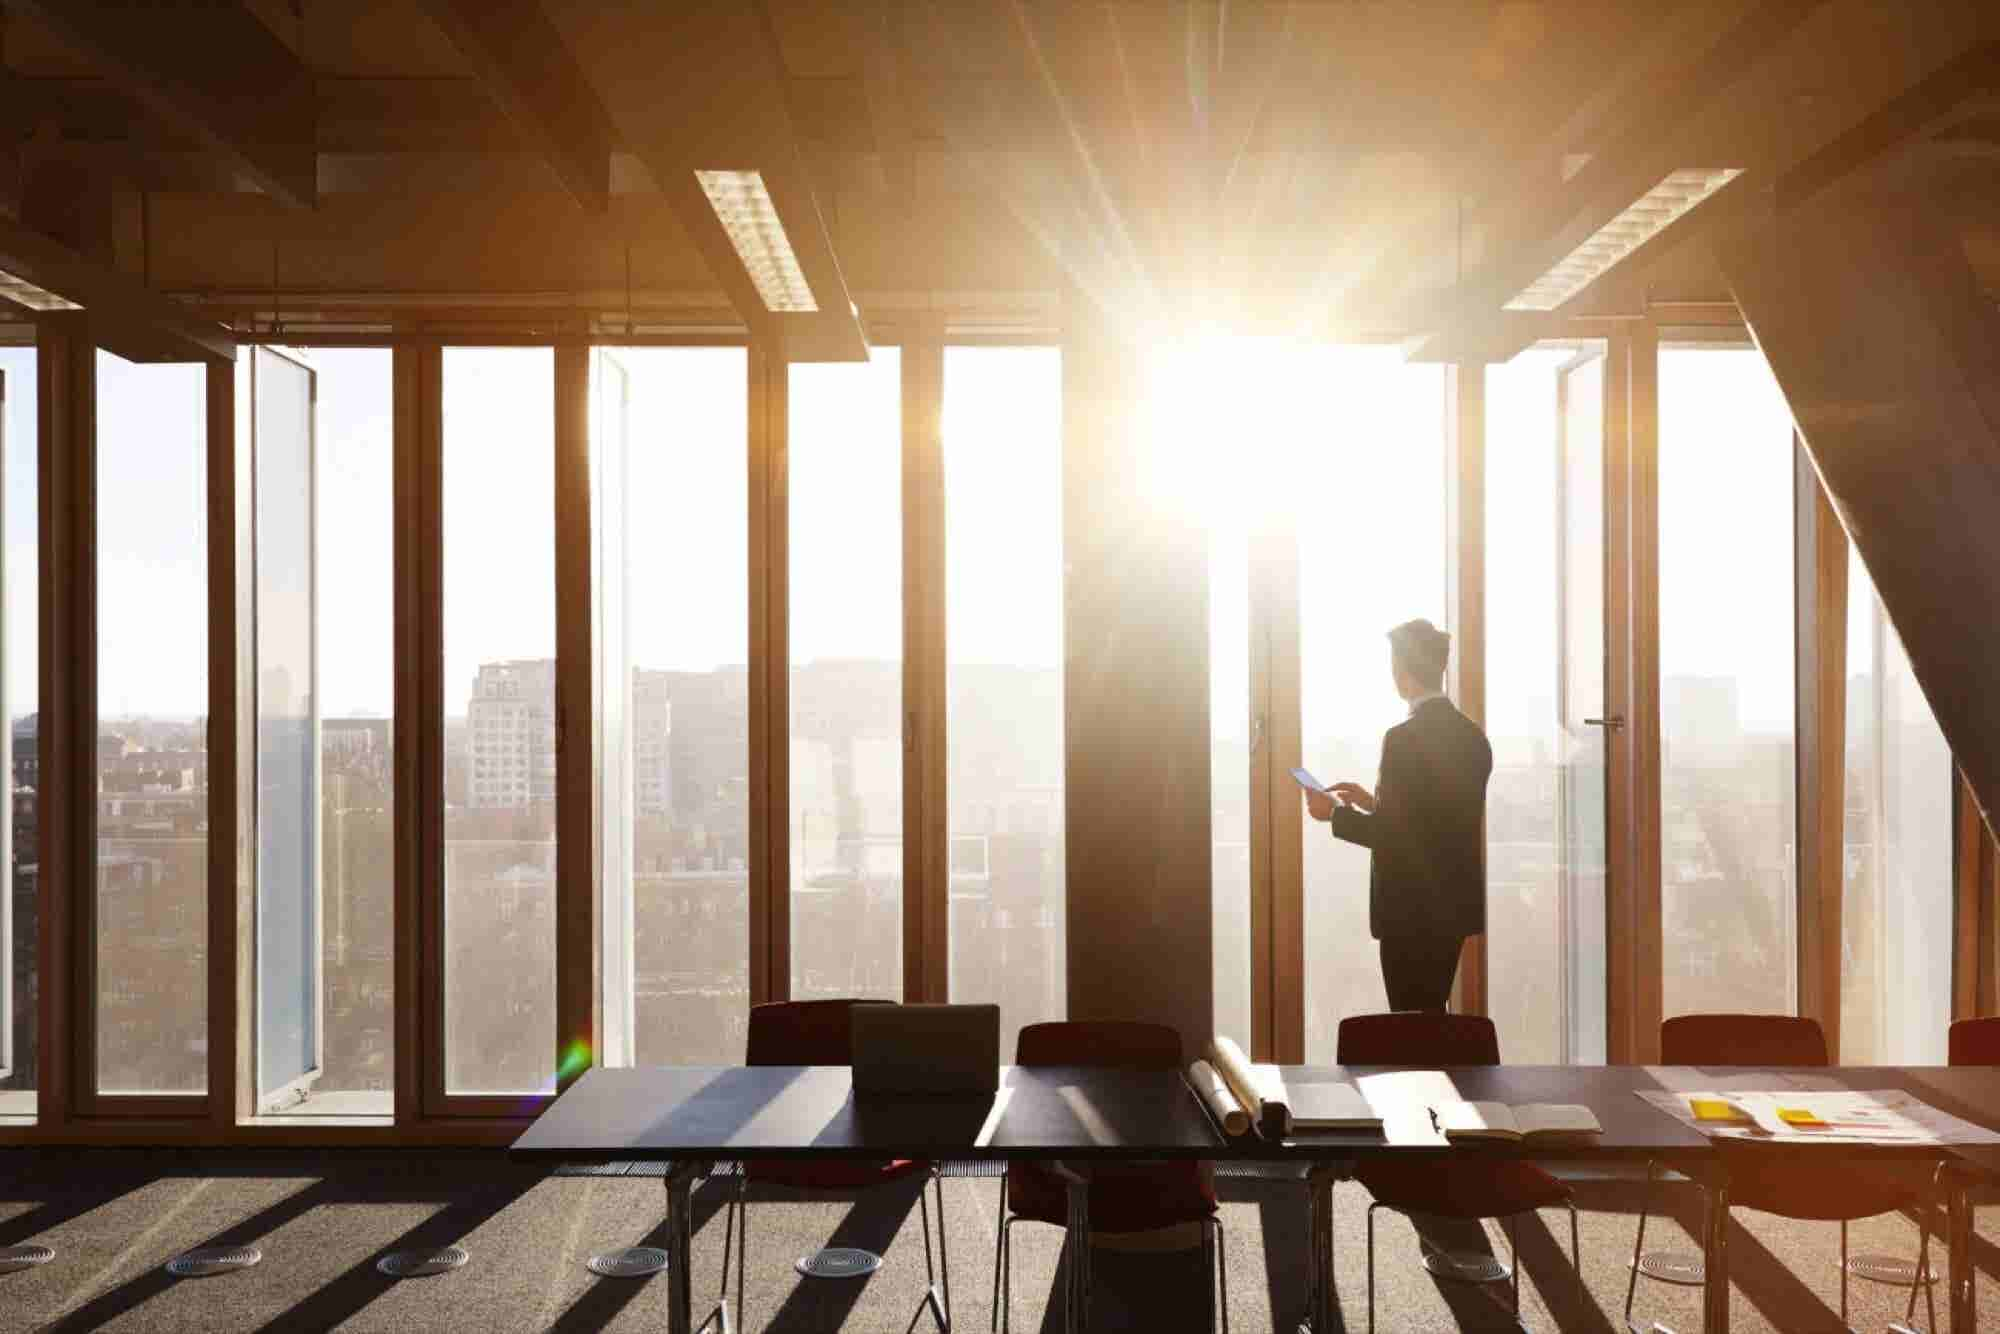 What Corporate Incubators and Accelerators Can Mean for Your Business